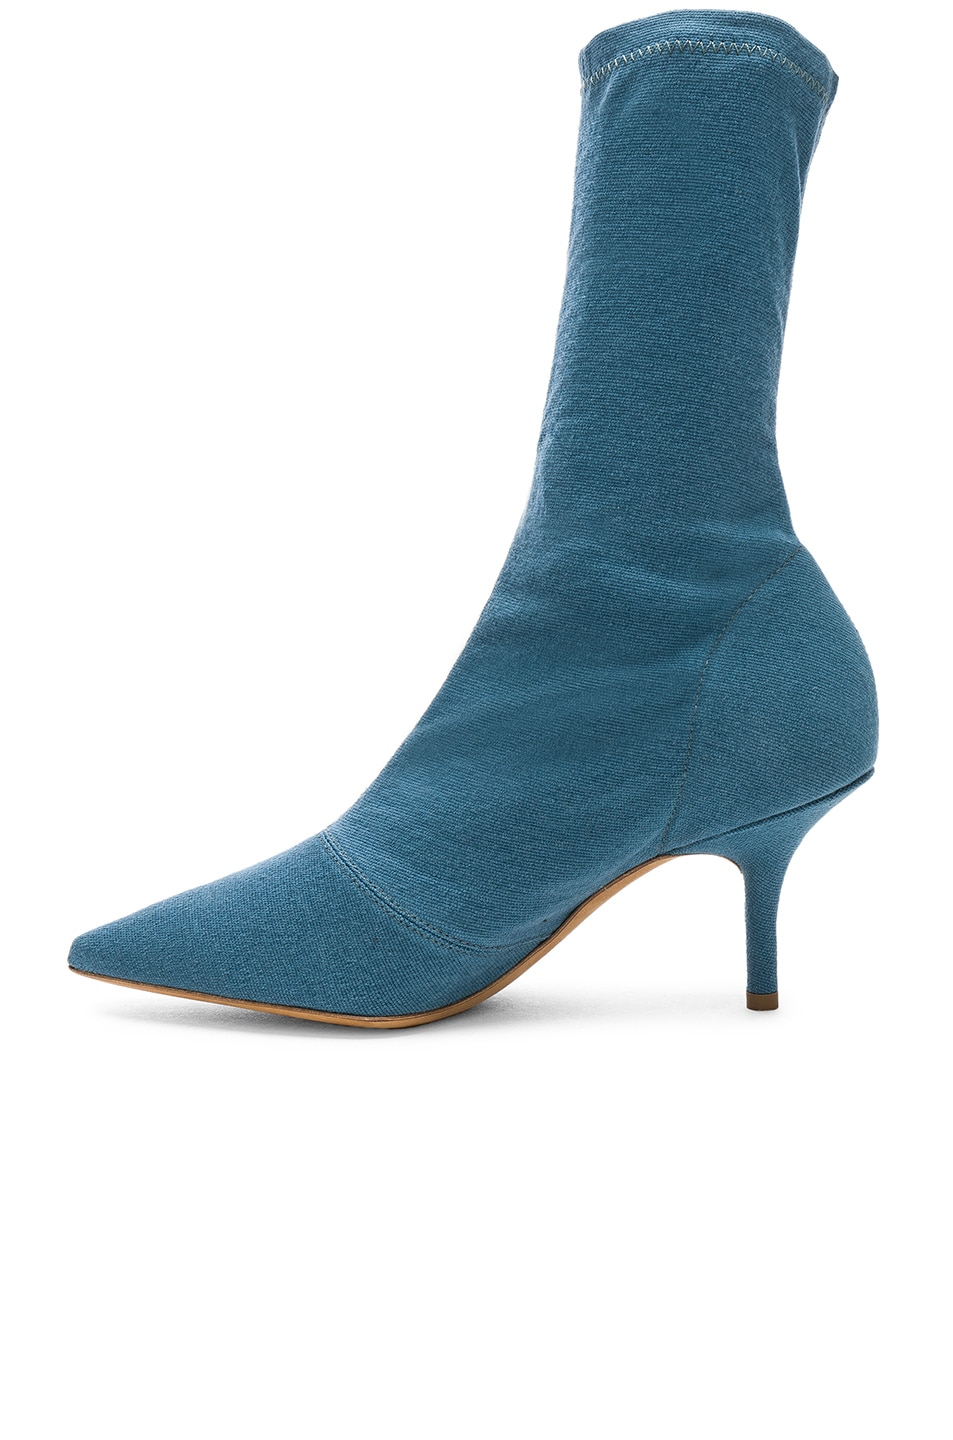 Image 5 of YEEZY Season 7 Stretch Ankle Bootie in Aqua